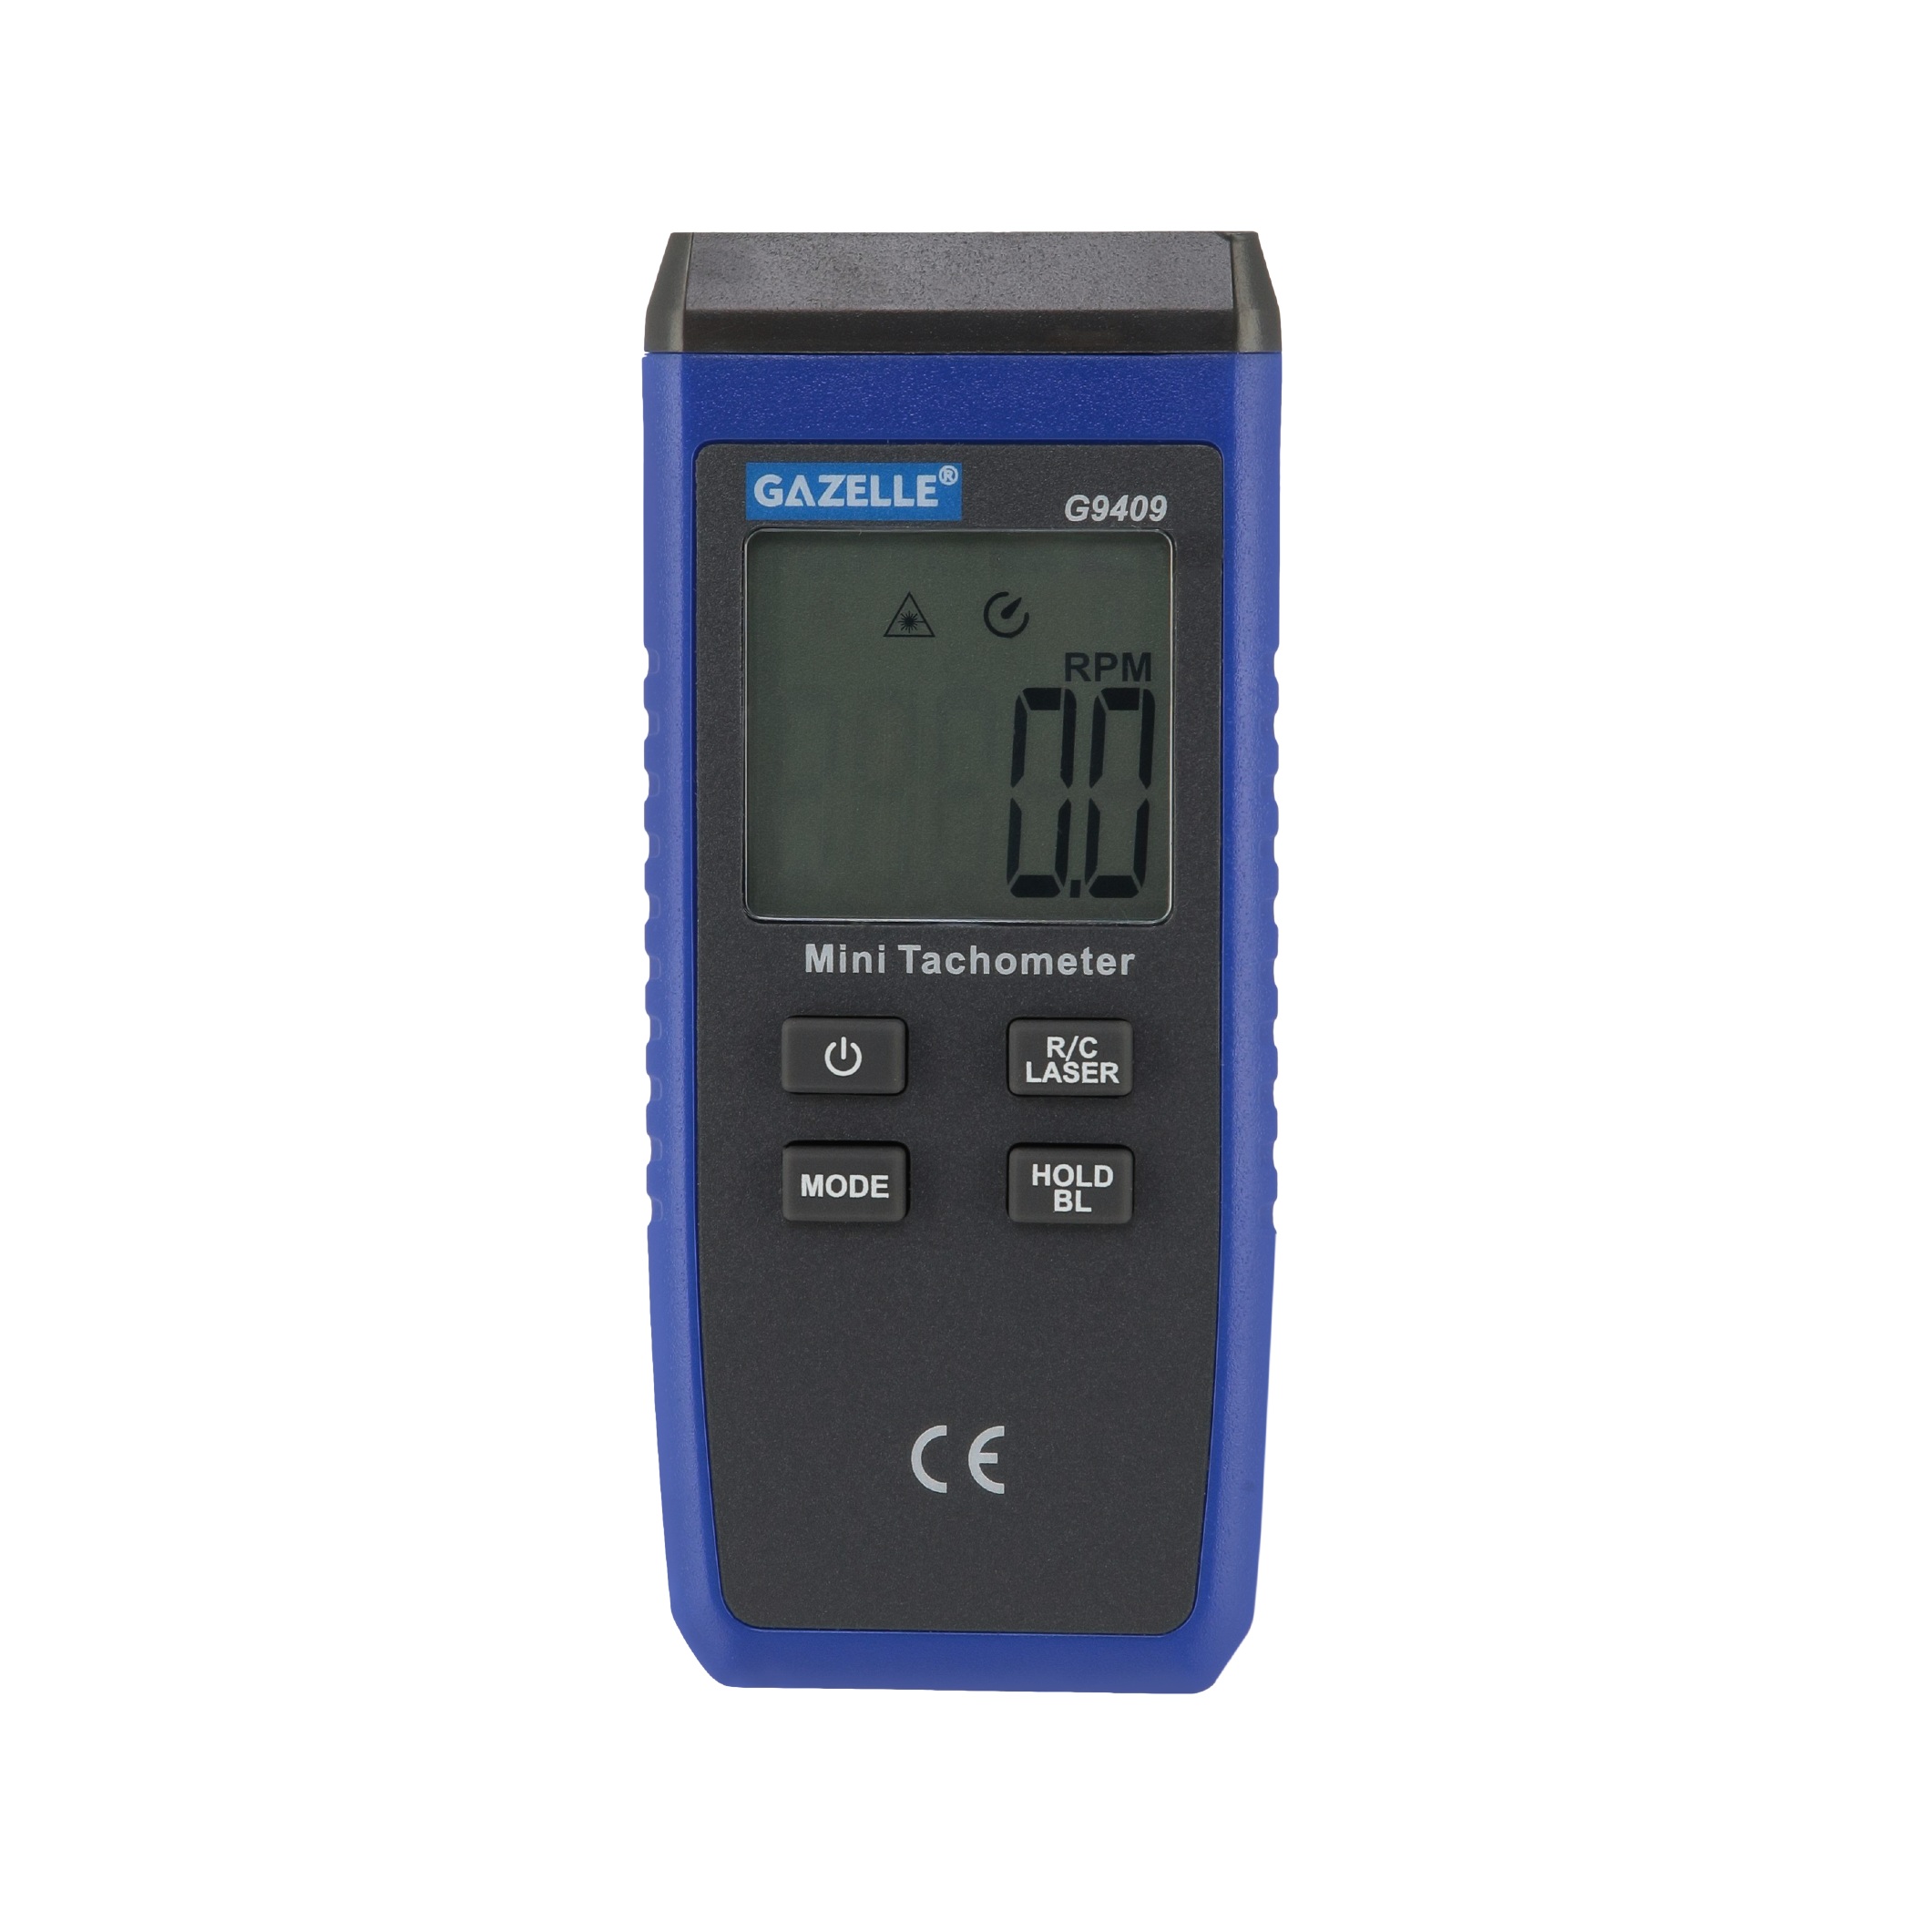 GAZELLE G9403 - Mini Infrared Thermometer